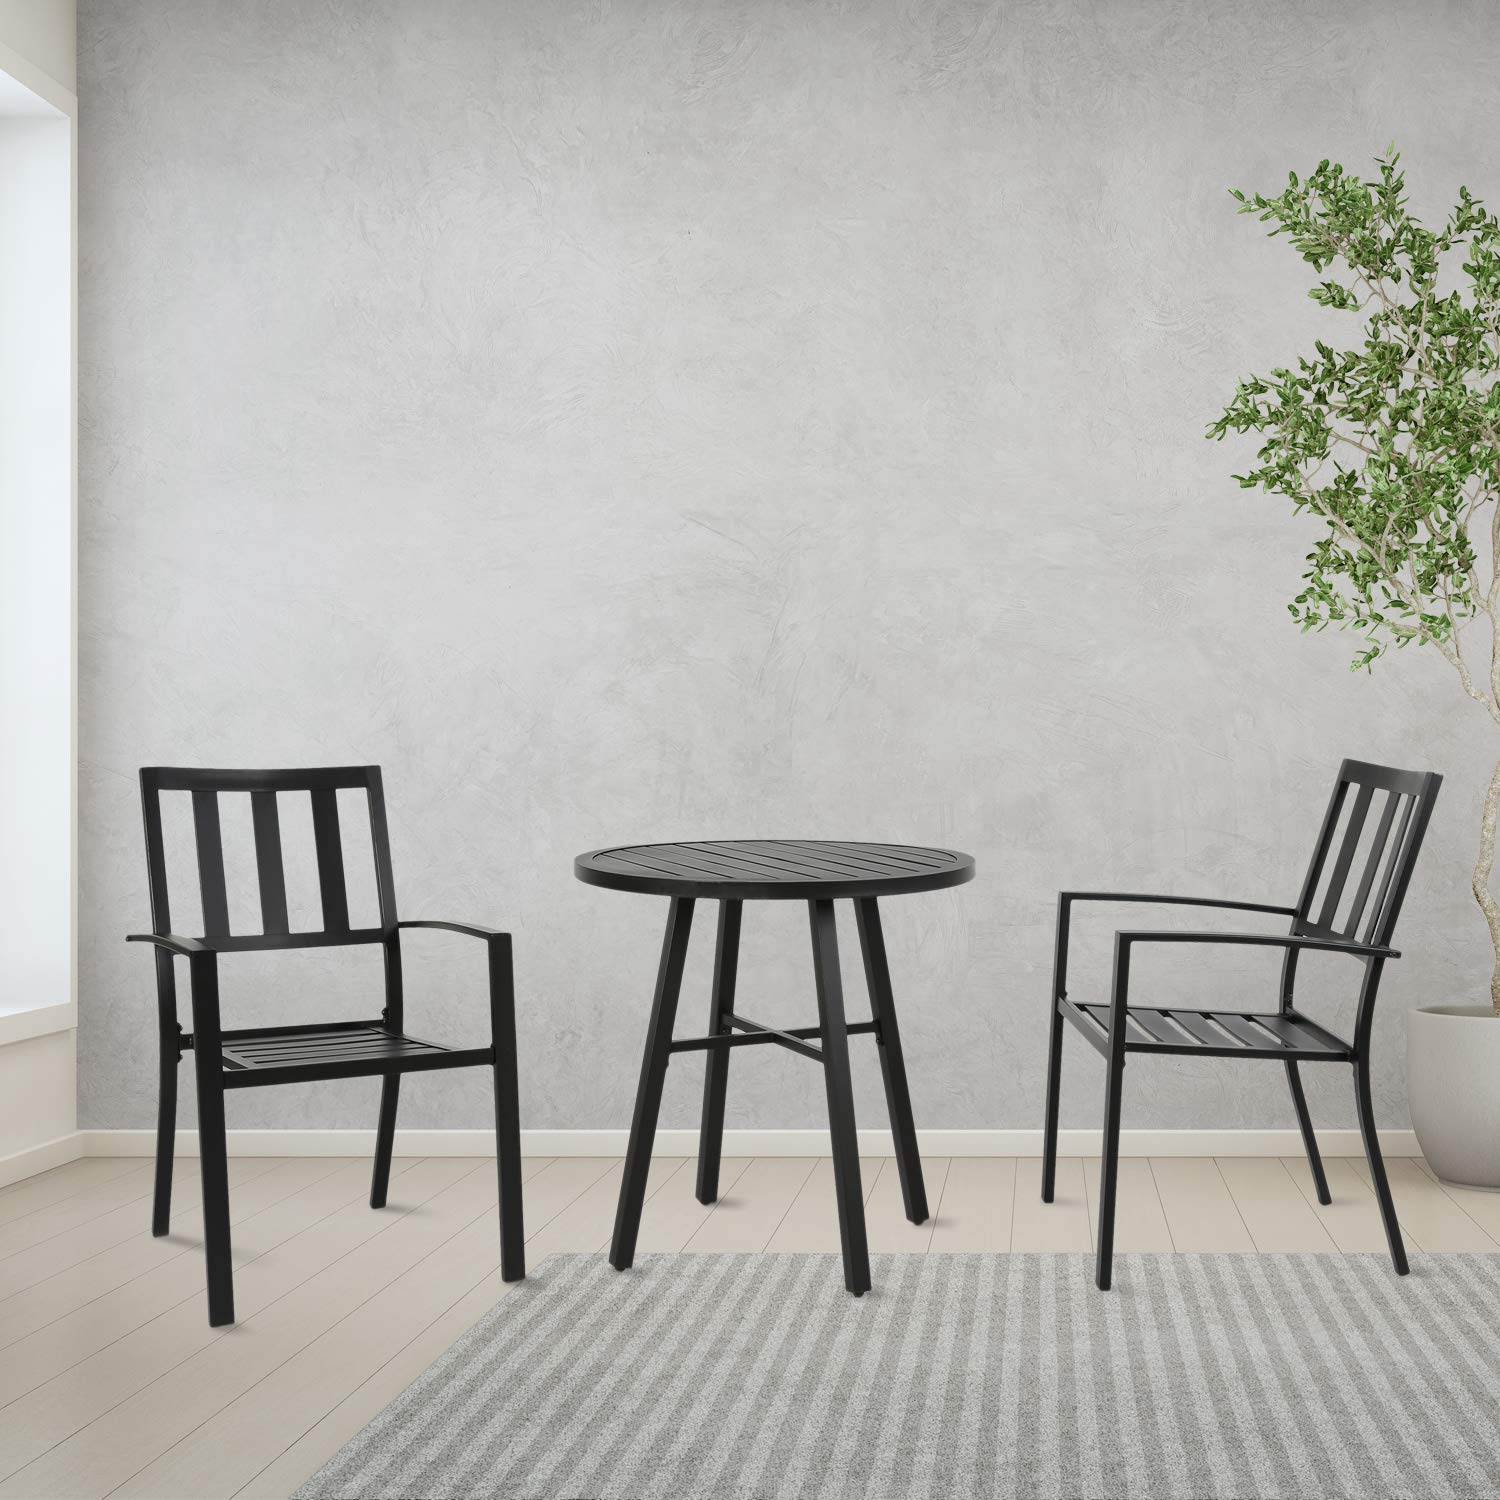 Ulax furniture Outdoor Round Side Table, Patio Coffee Bistro Table by Ulax furniture (Image #4)